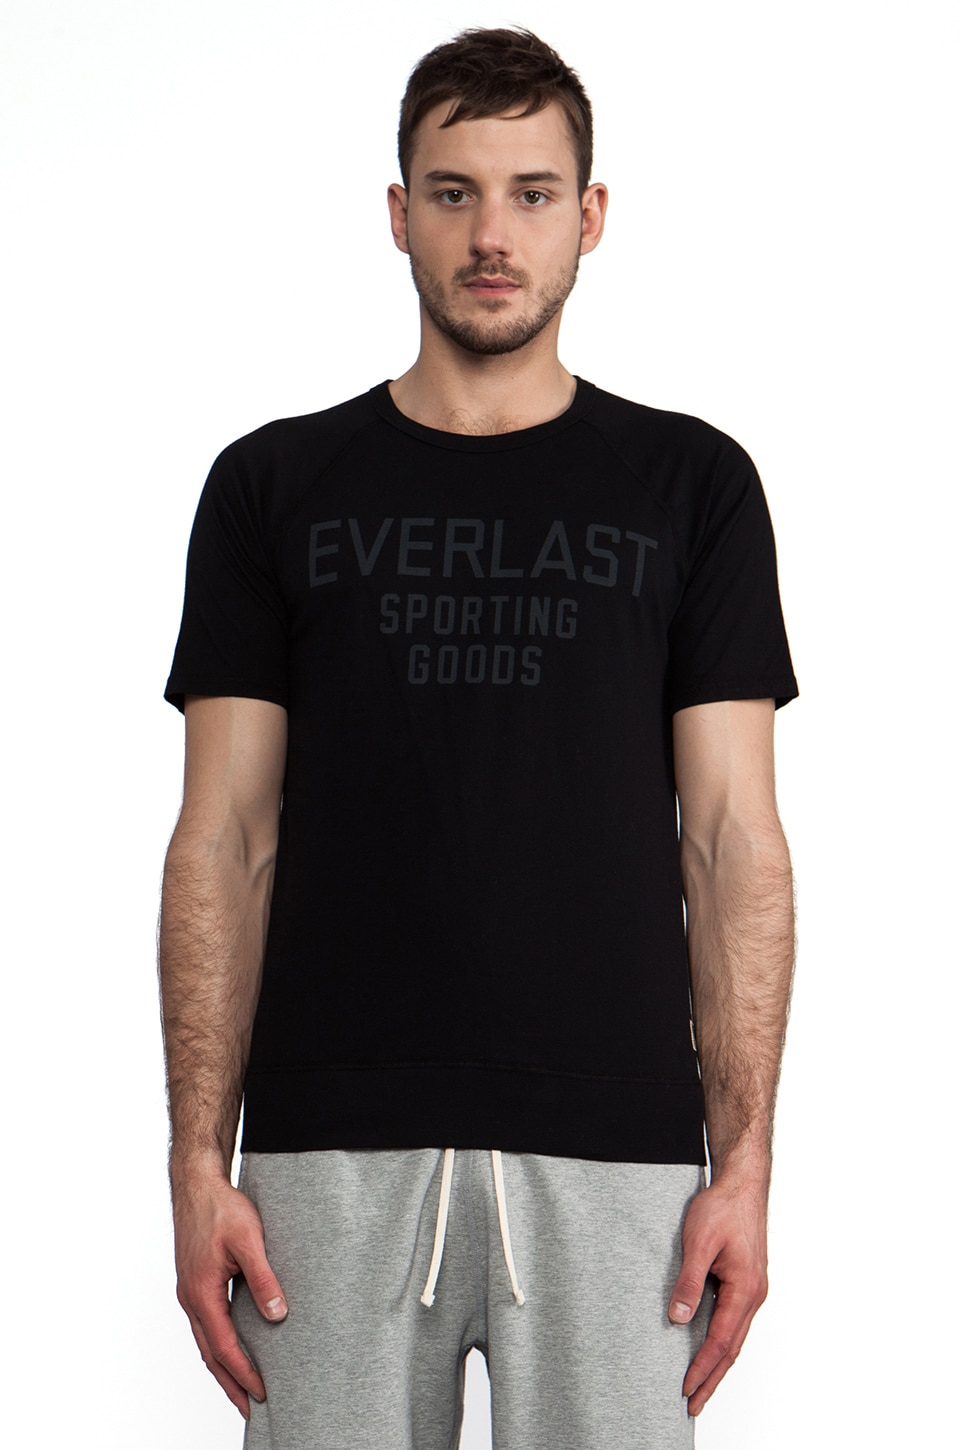 Reigning Champ x Everlast Sporting Goods Raglan Tee in Black